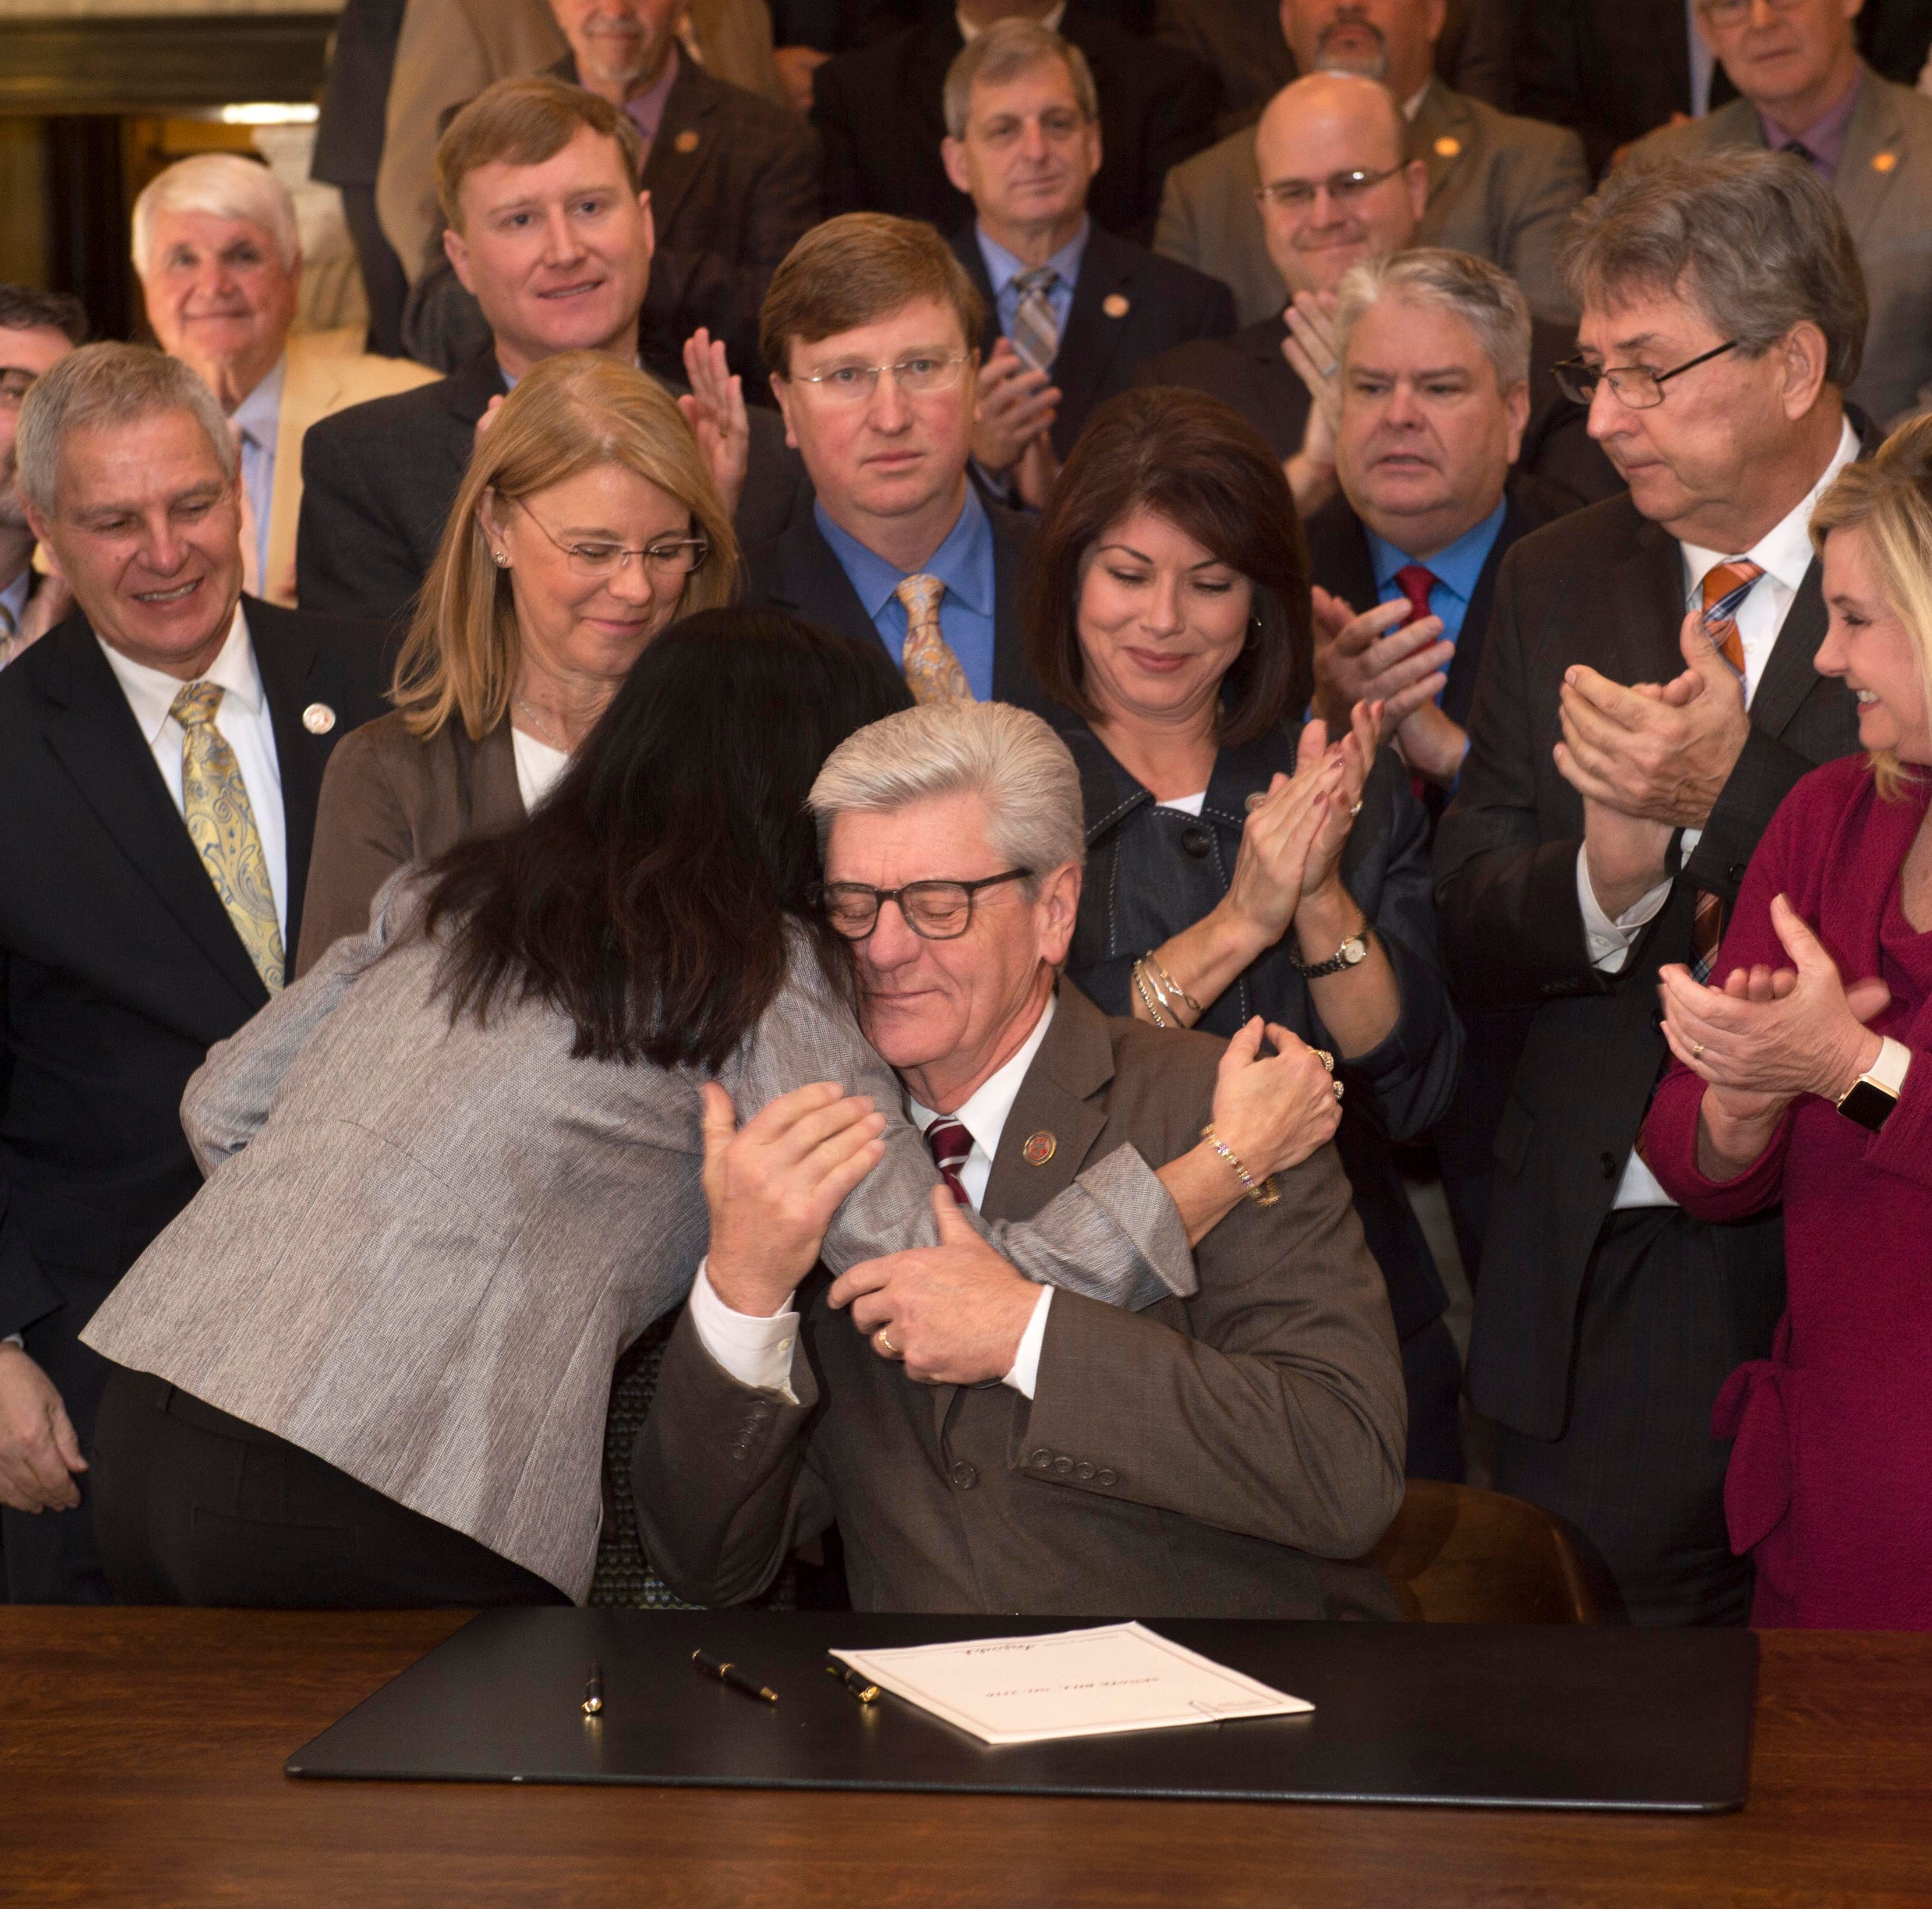 Surrounded by members of the Mississippi state legislature and other guests, Miss. Gov. Phil Bryant (seated) hugs Miss. Sen. Angela Hill-R, after Bryant signed into law what is commonly known as the Heartbeat Bill in Mississippi. The new legislation bans abortion procedures in Mississippi following the detection of a fetal heartbeat and is one of the most strict in the United States. Jackson, Miss. Thursday, March 21, 2019.